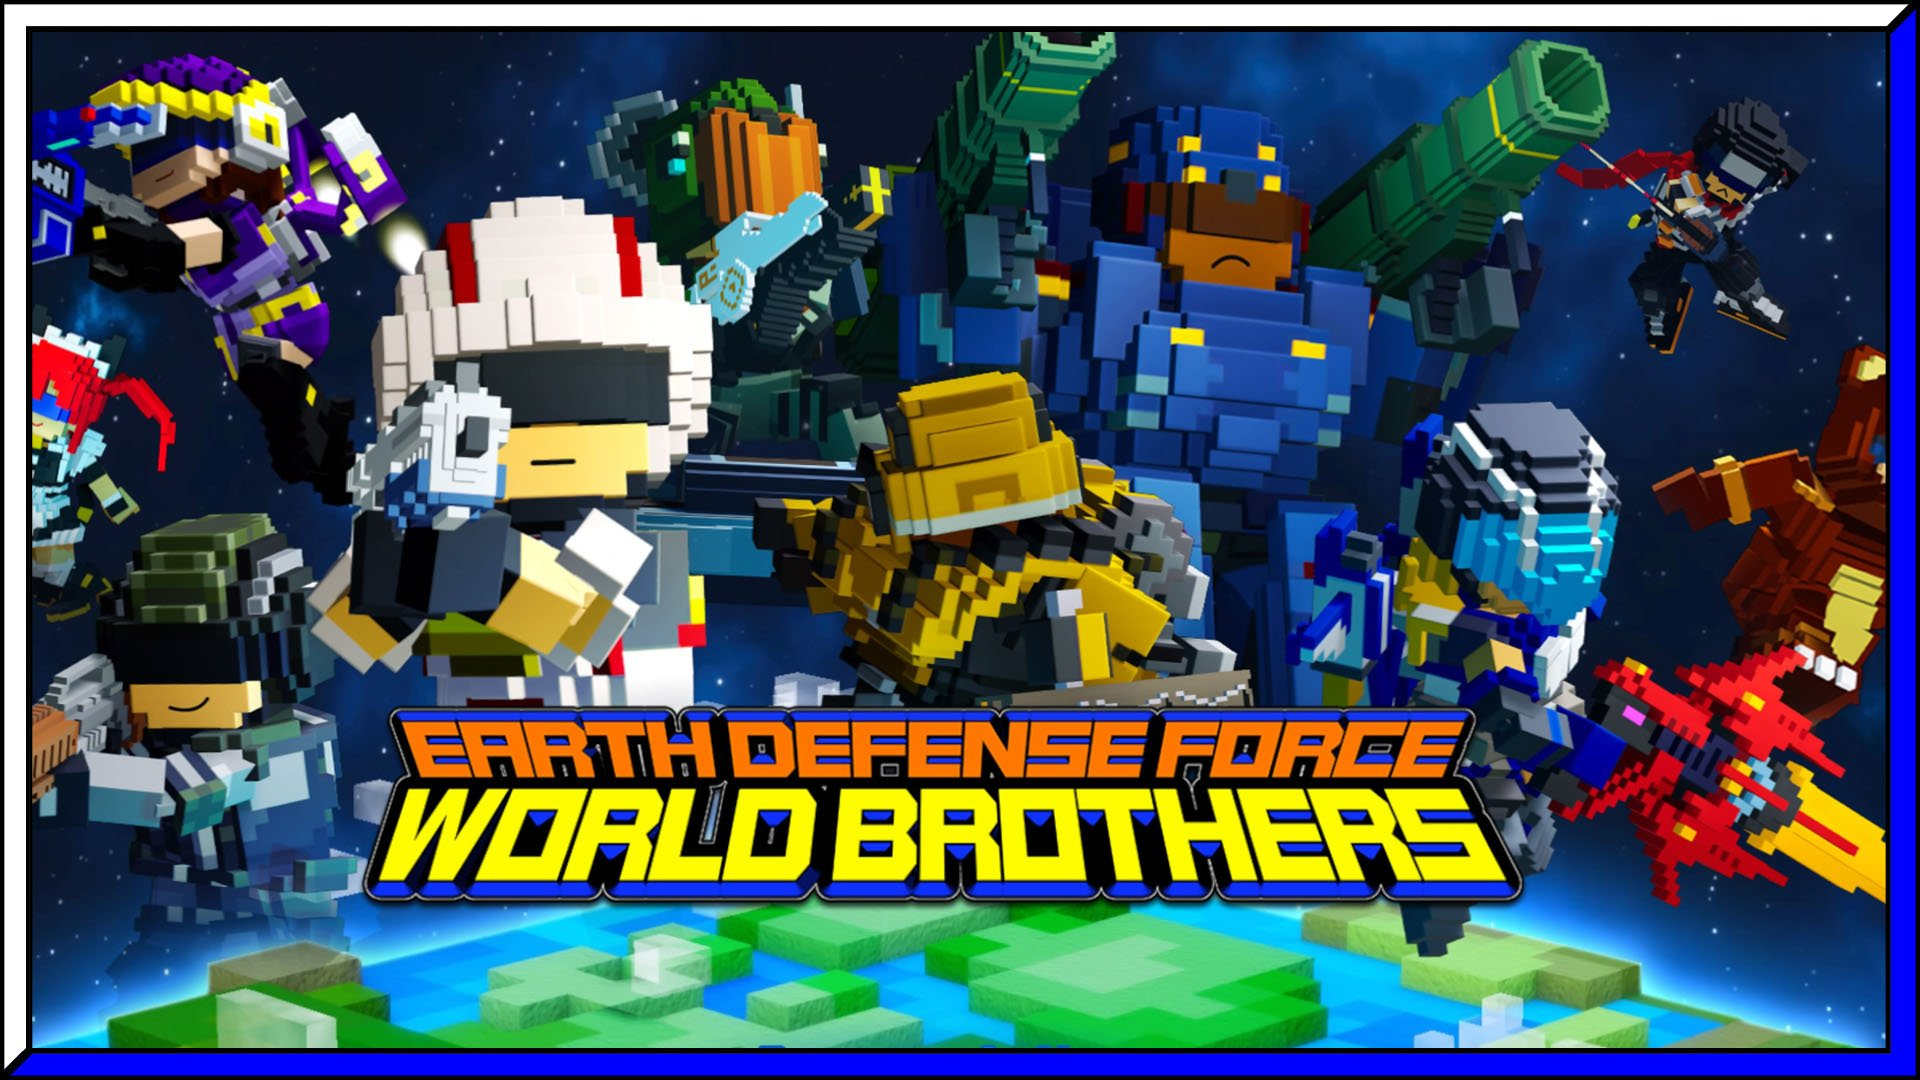 EARTH DEFENSE FORCE WORLD BROTHERS Fi3